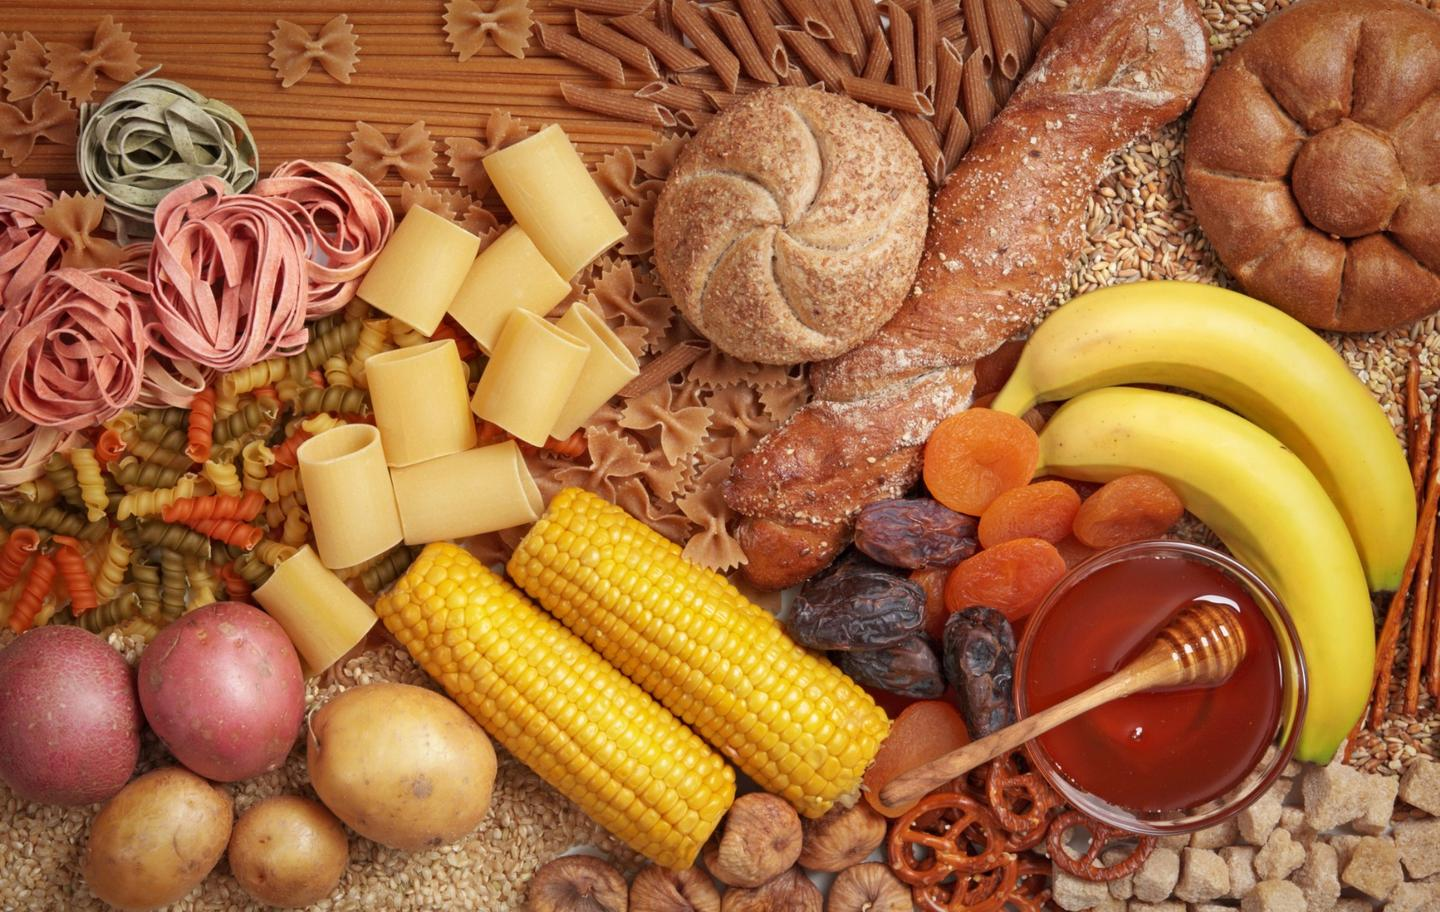 A new study suggests low-carb diets high in animal fats and proteins can increase mortality risks